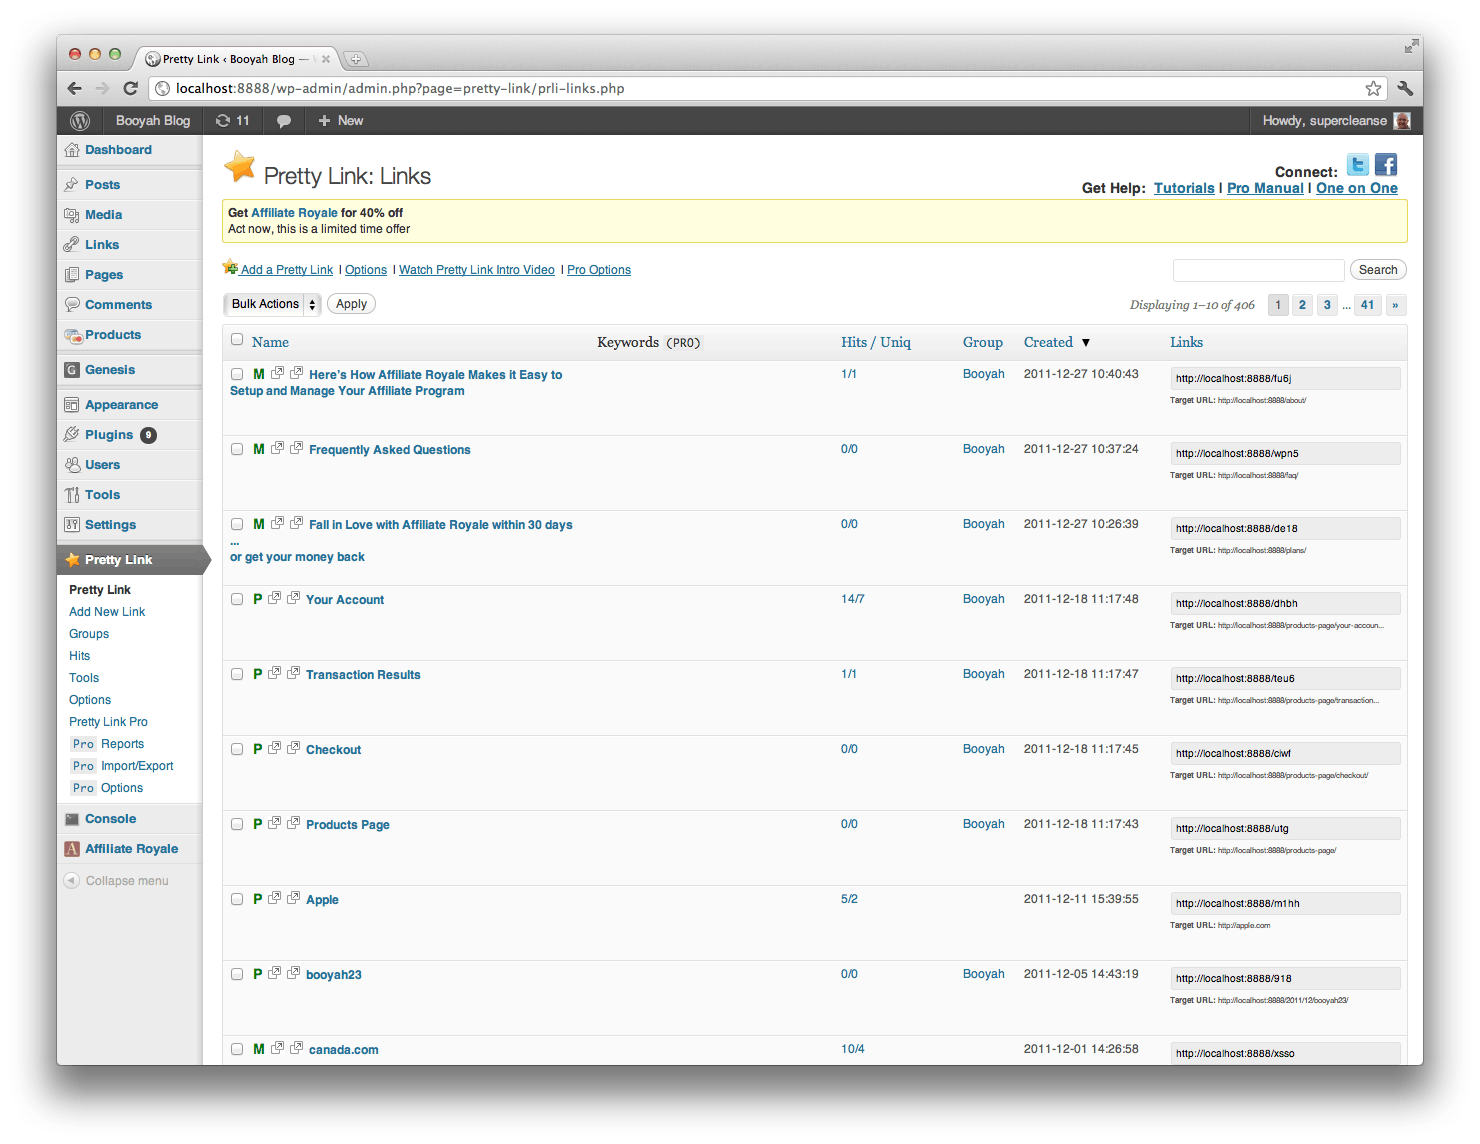 Image of Pretty Link Pro Link Pro Dashboard